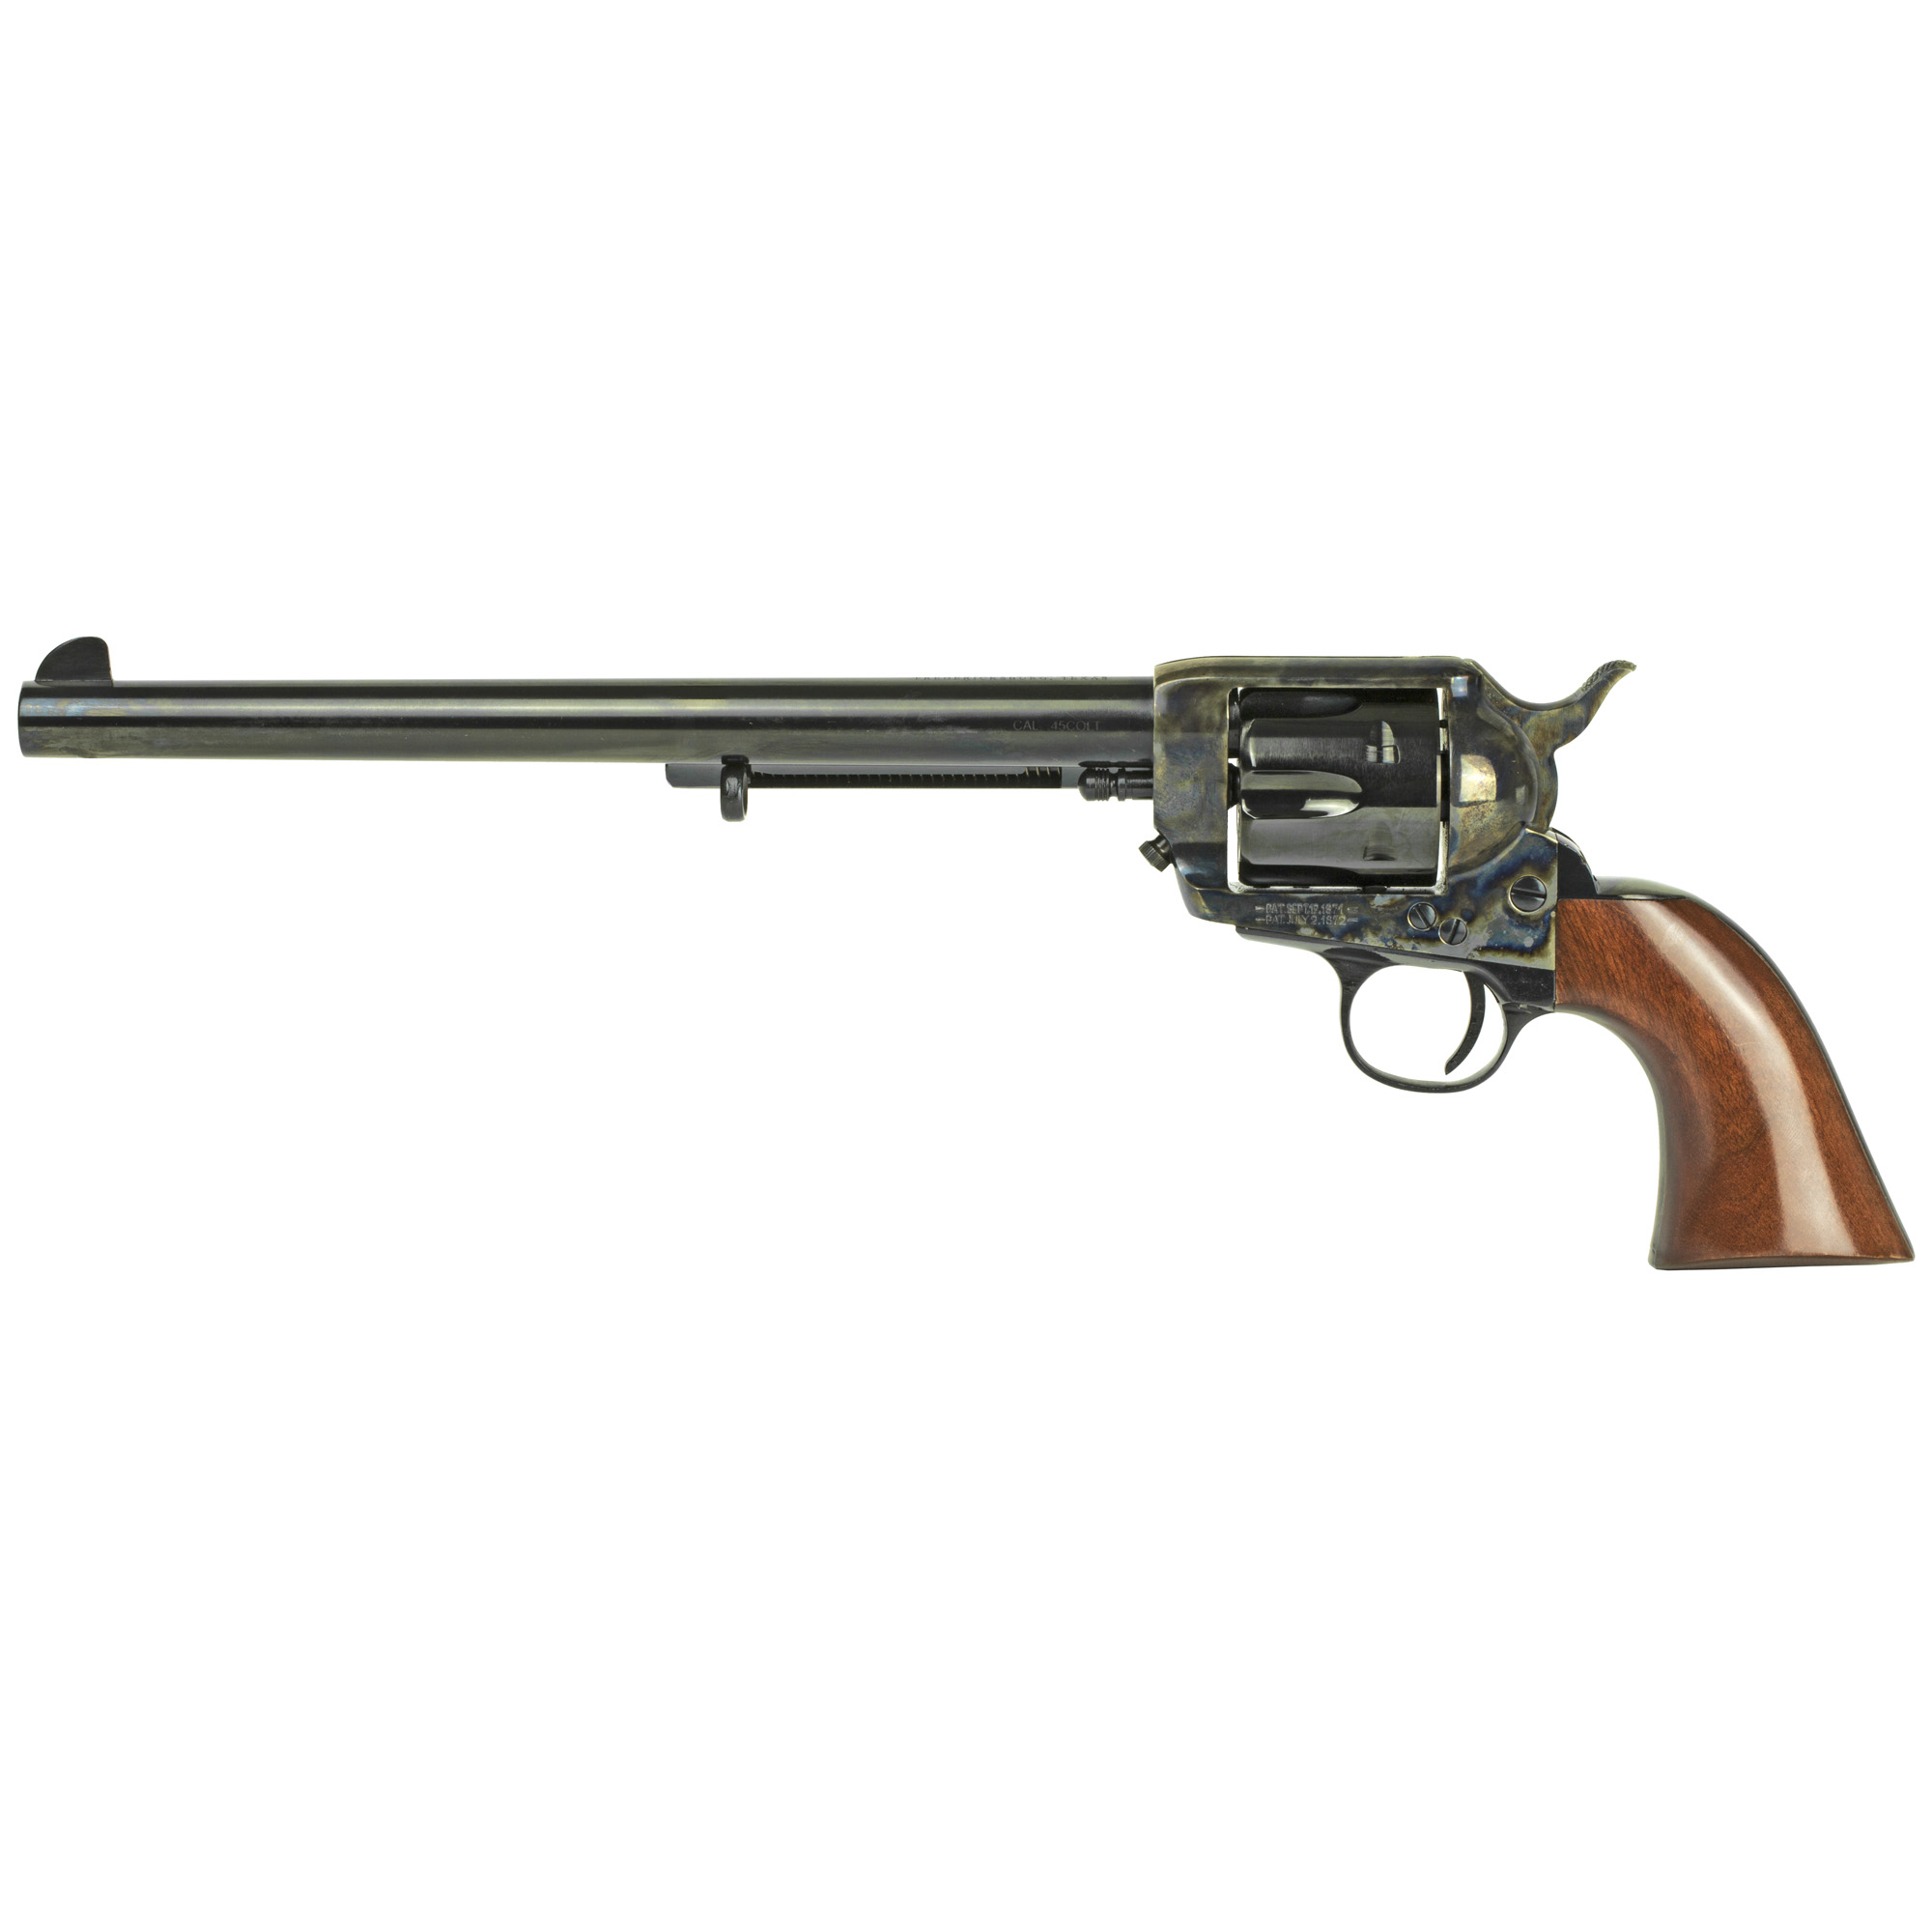 "Made famous in the 1993 Western classic film Tombstone"" this 10-inch barreled 1873 single-action revolver emulates the legendary sixgun attributed to lawman/gunman Wyatt Earp. Patterned exactly after the long-barreled peacemaker used in this classic horse opera"" Cimarron's unique revolver features the solid sterling silver ""Wyatt Earp"" Peacekeeper"" presentation plaque neatly inlaid into the sixgun's one-piece"" walnut stock."